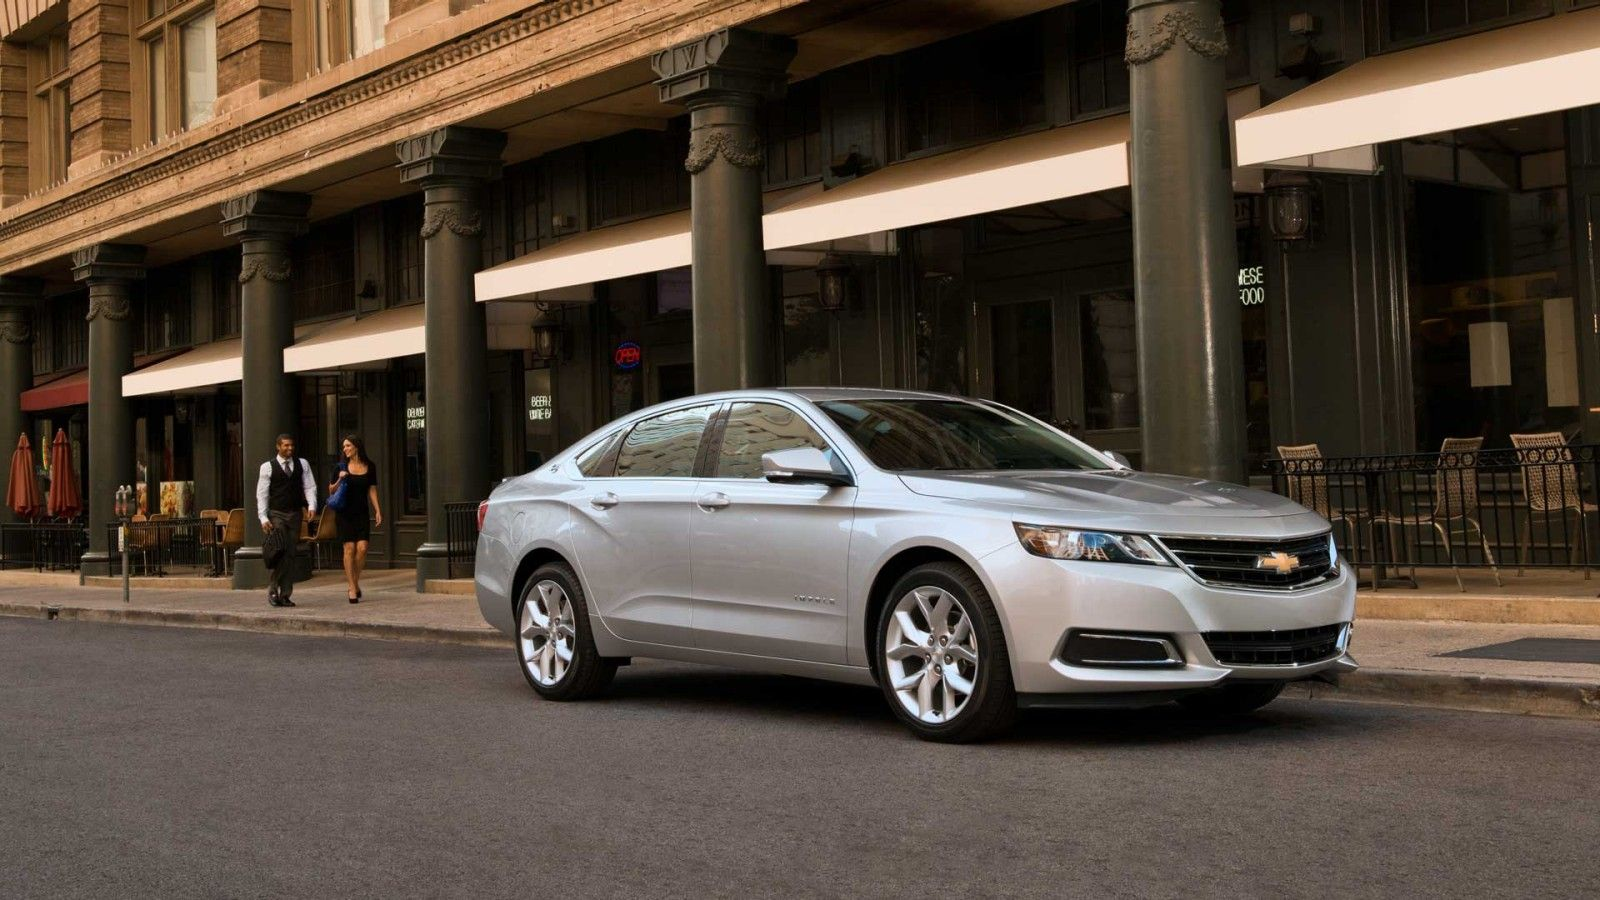 Check out the 2014 Chevrolet Impala at Diepholz Auto Group